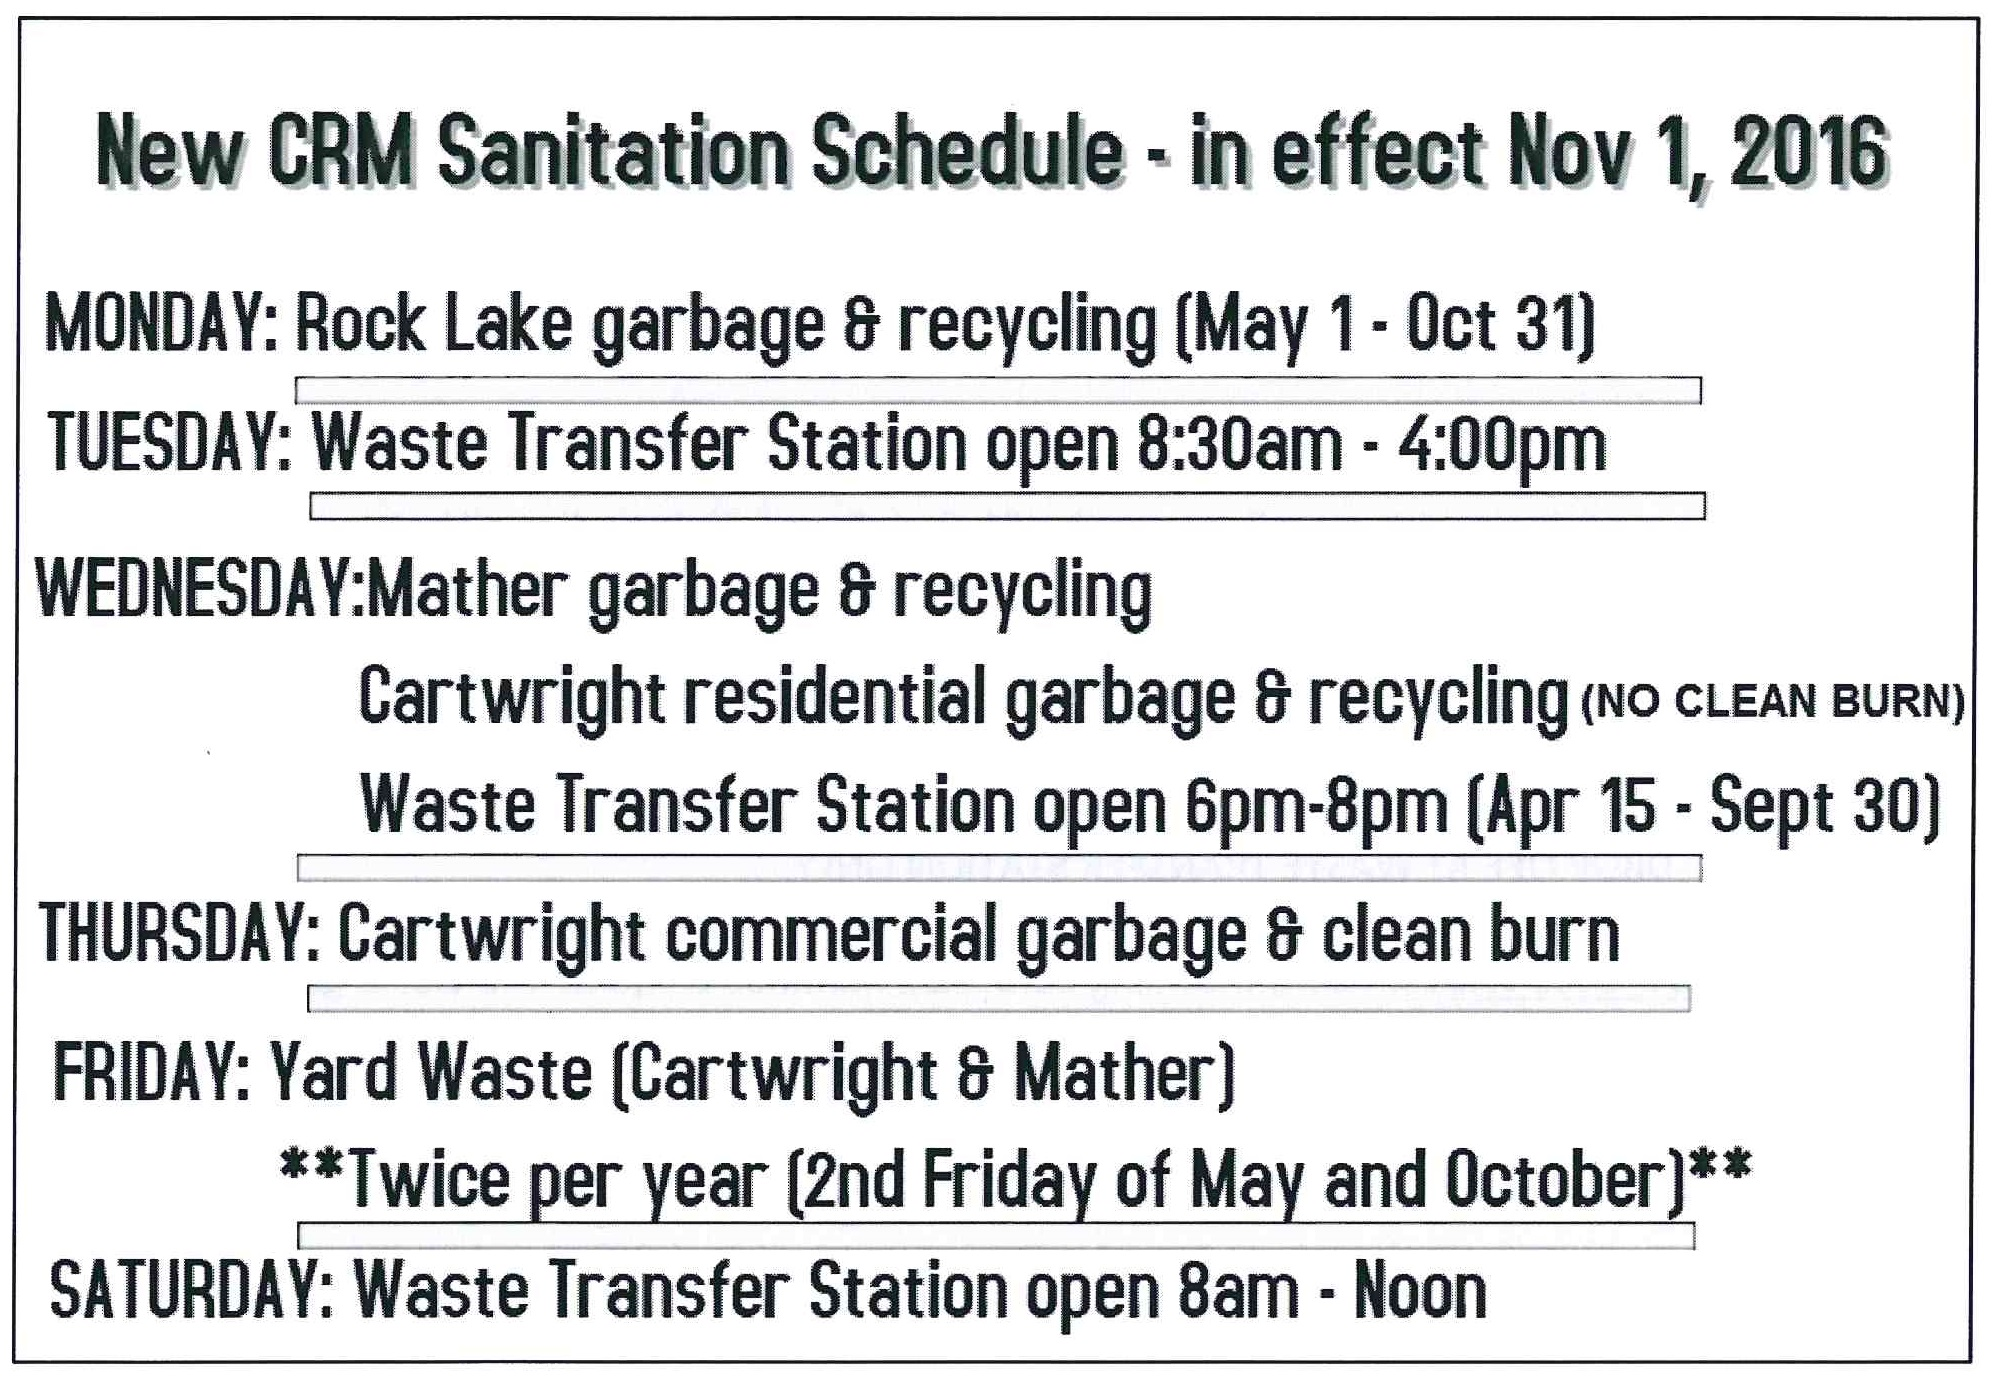 CRM Sanitation Schedule